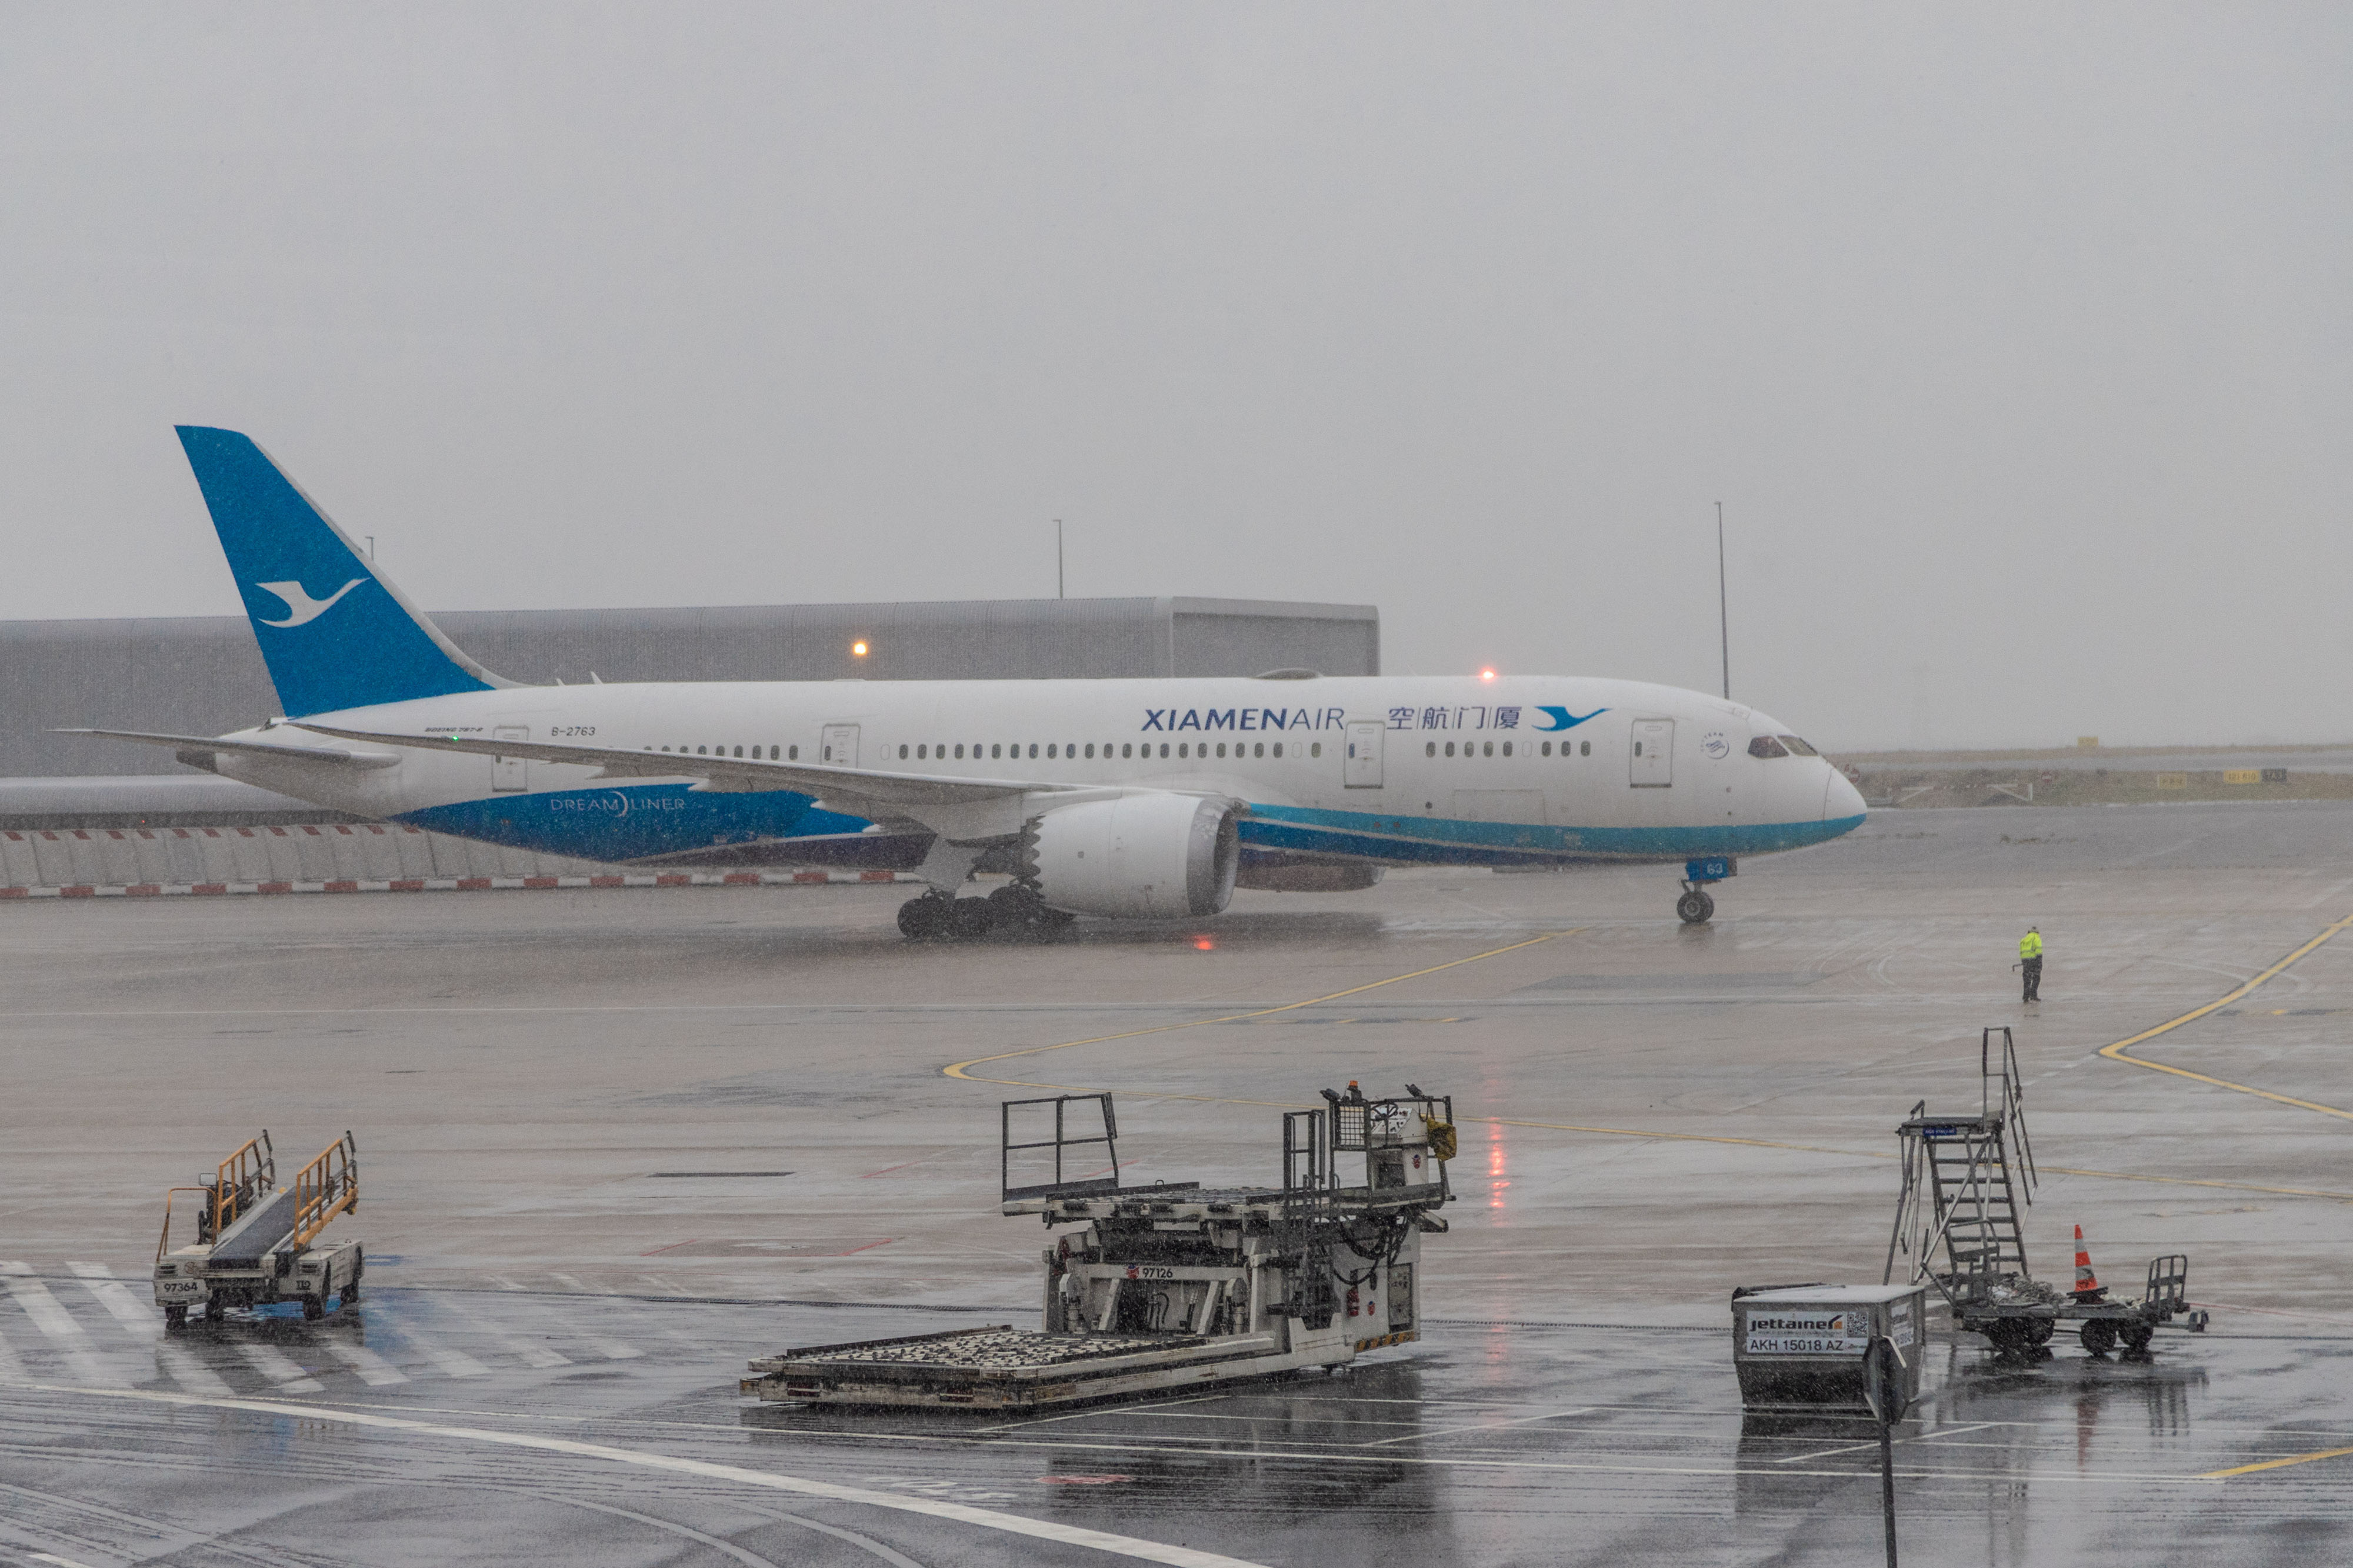 A passenger aircraft operated by Xiamen Airlines sits on the tarmac at Charles de Gaulle airport, in Roissy, France, on Tuesday, January 28.